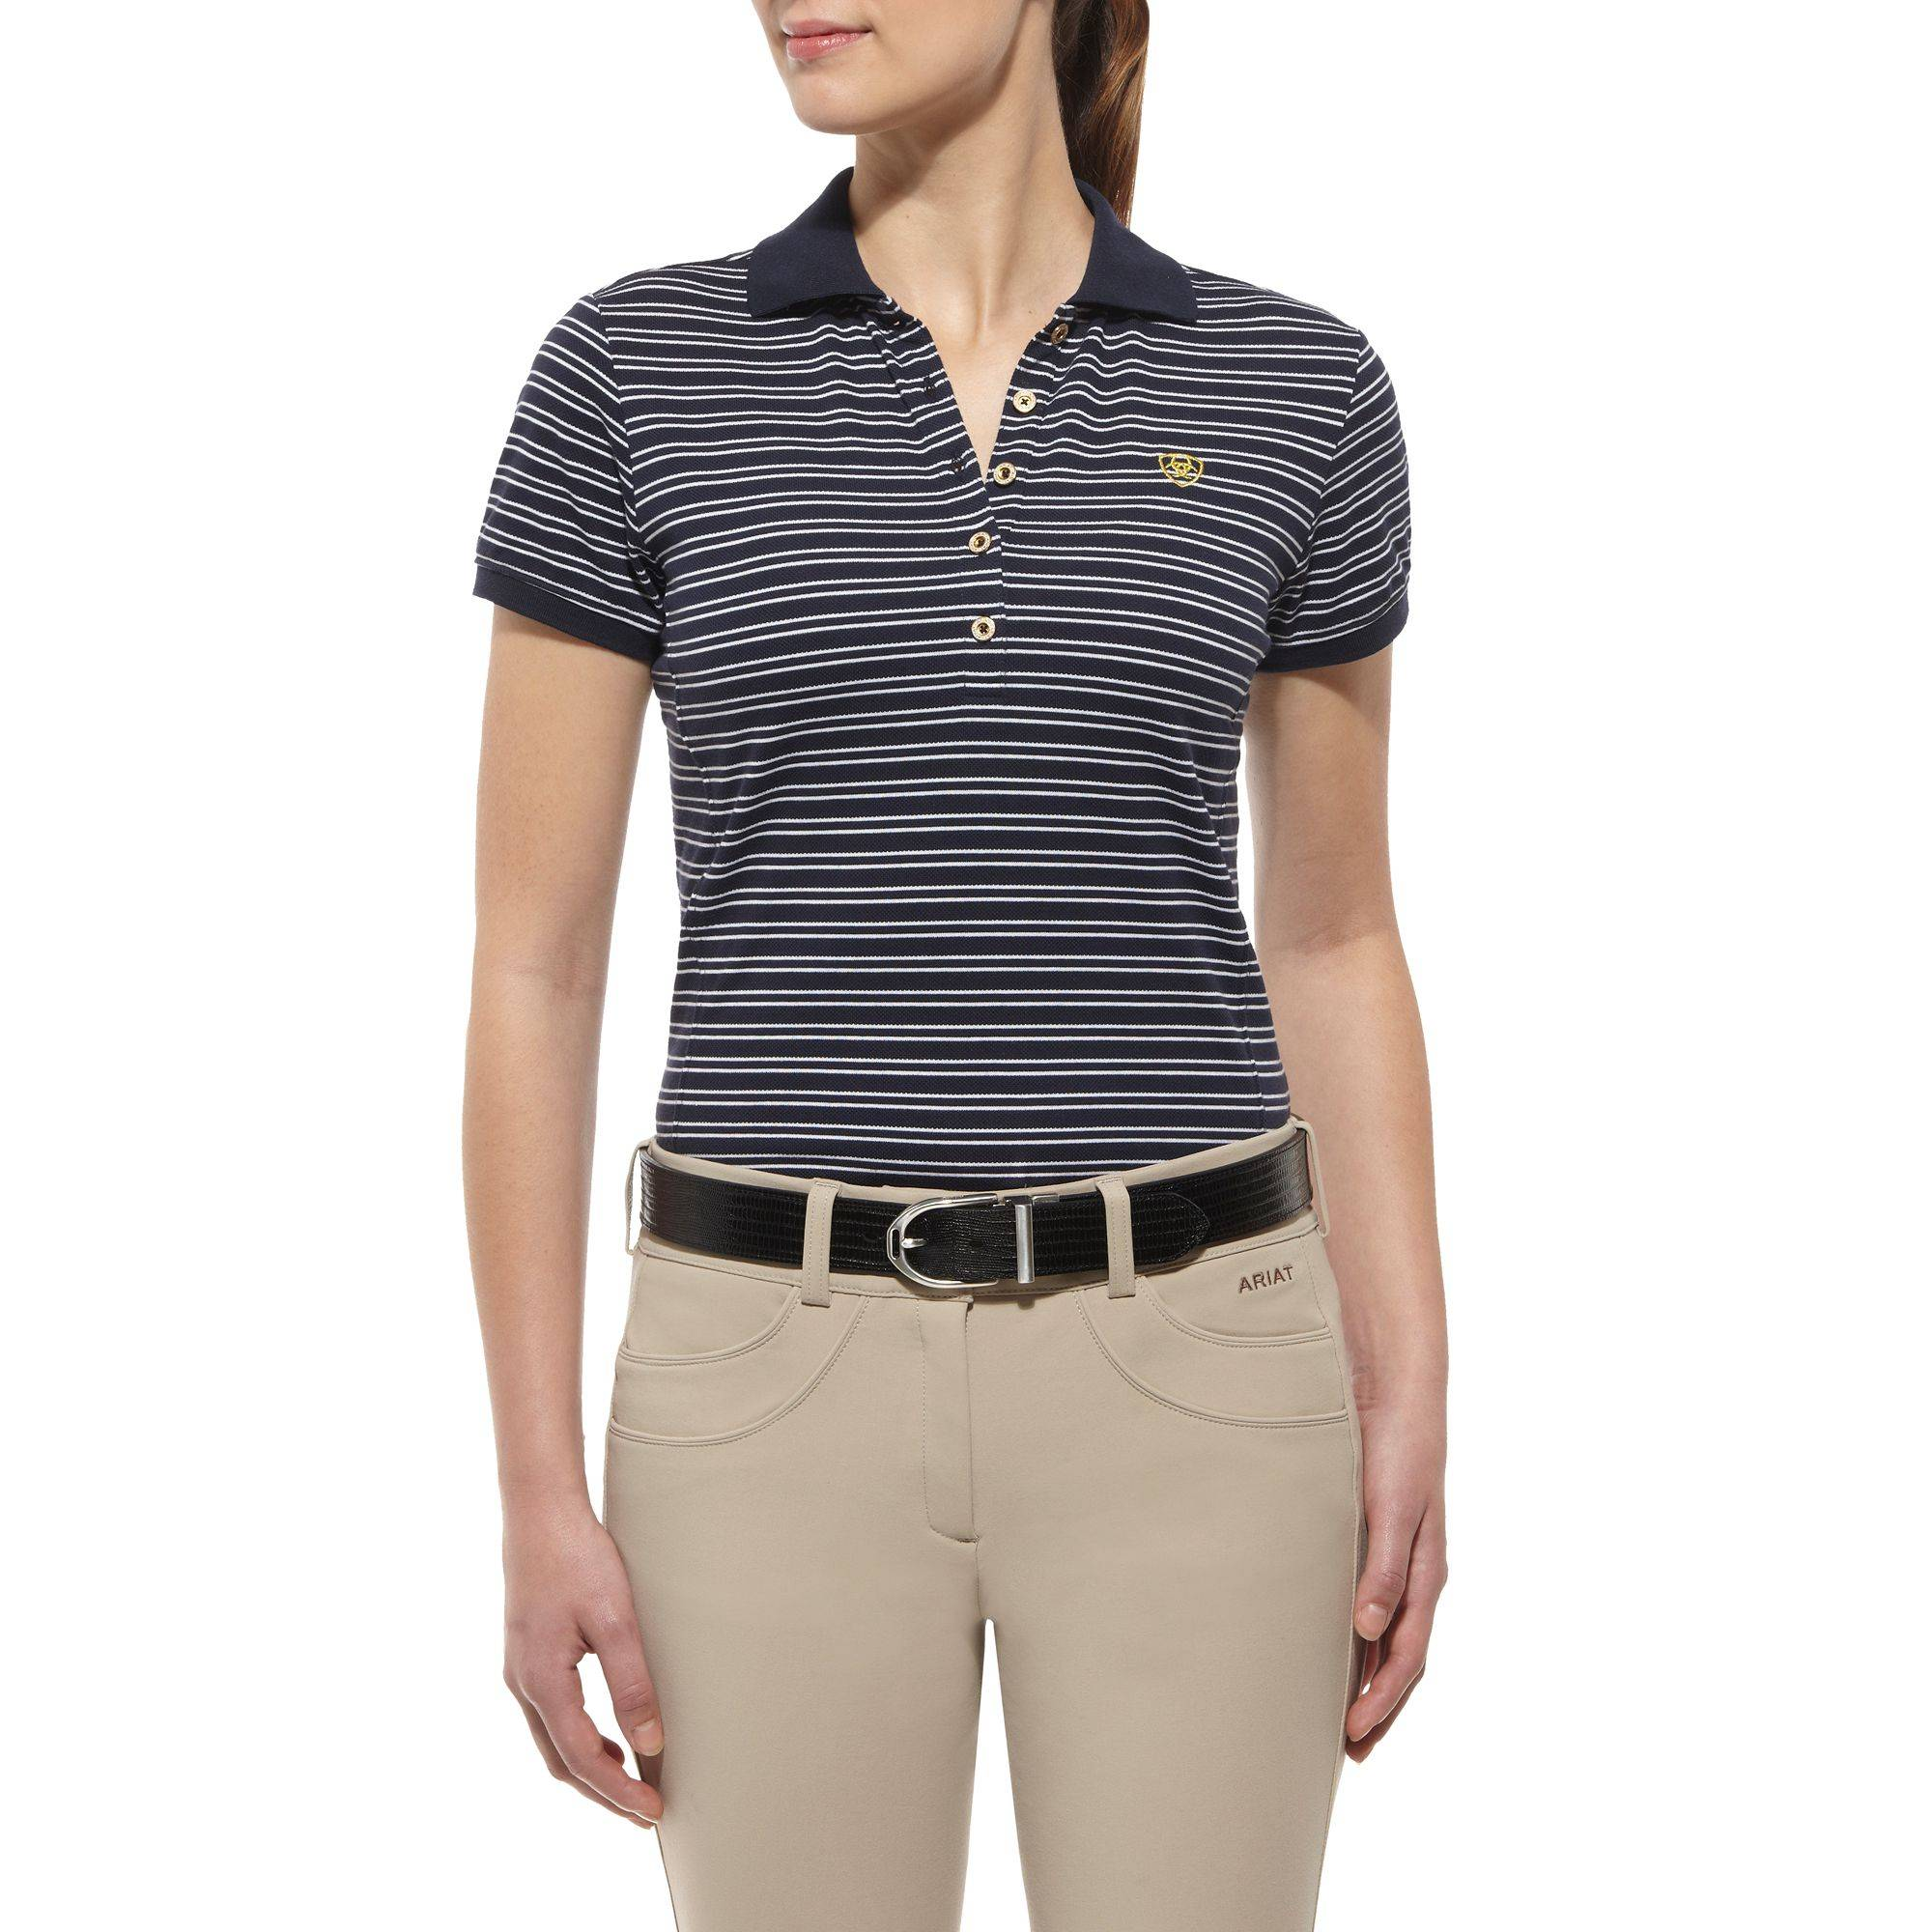 6d2c27e9 Ariat Prix Polo Shirt Ladies Navy Stripe